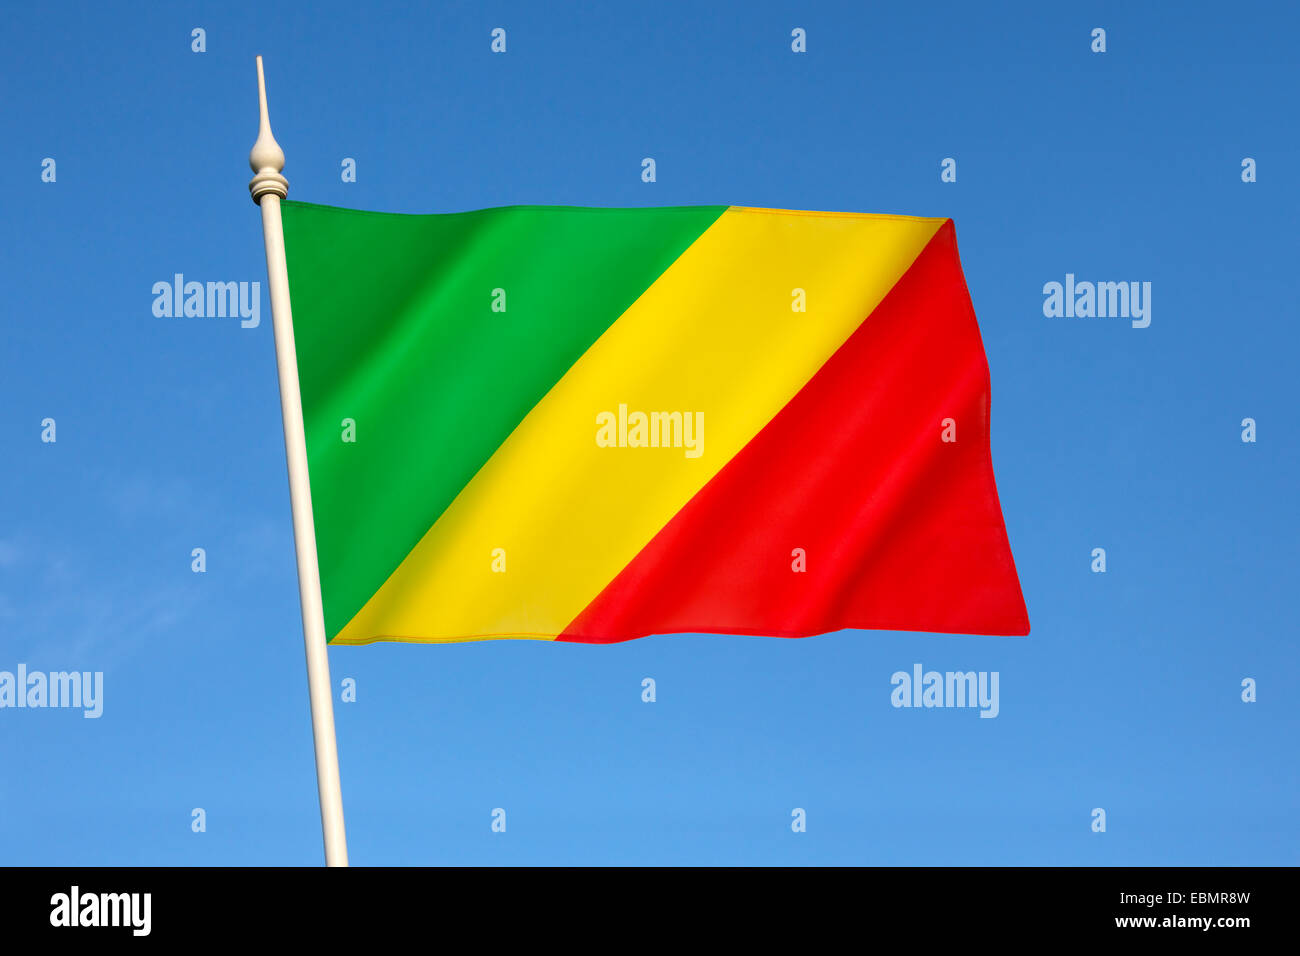 Flag of the Republic of the Congo - Stock Image